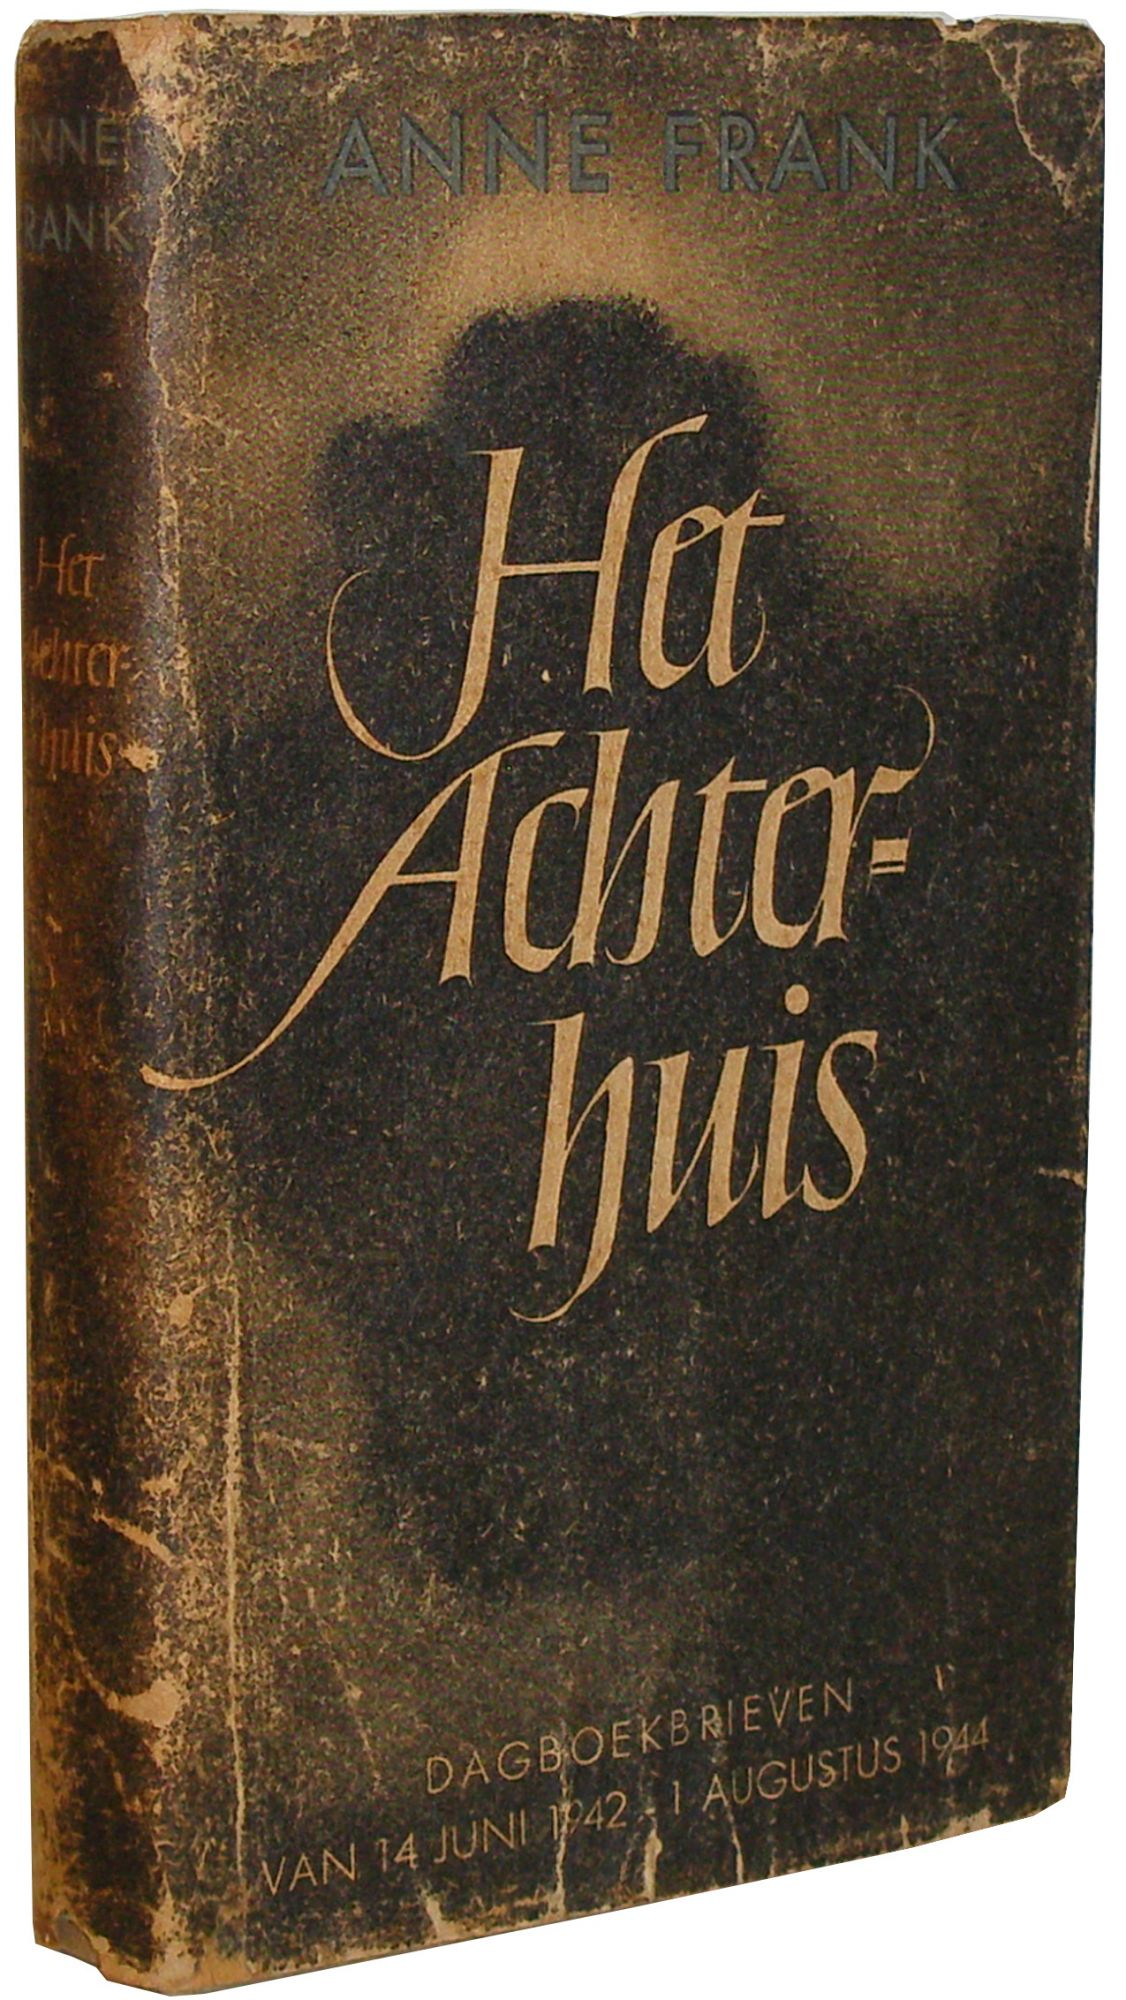 Collection of 188 items including rare unrestored first edition of Het Achterhuis (The Diary of Anne Frank) in original dust jacket, with subsequent 29 editions, translated editions in nine languages, books, periodicals, and Ephemera